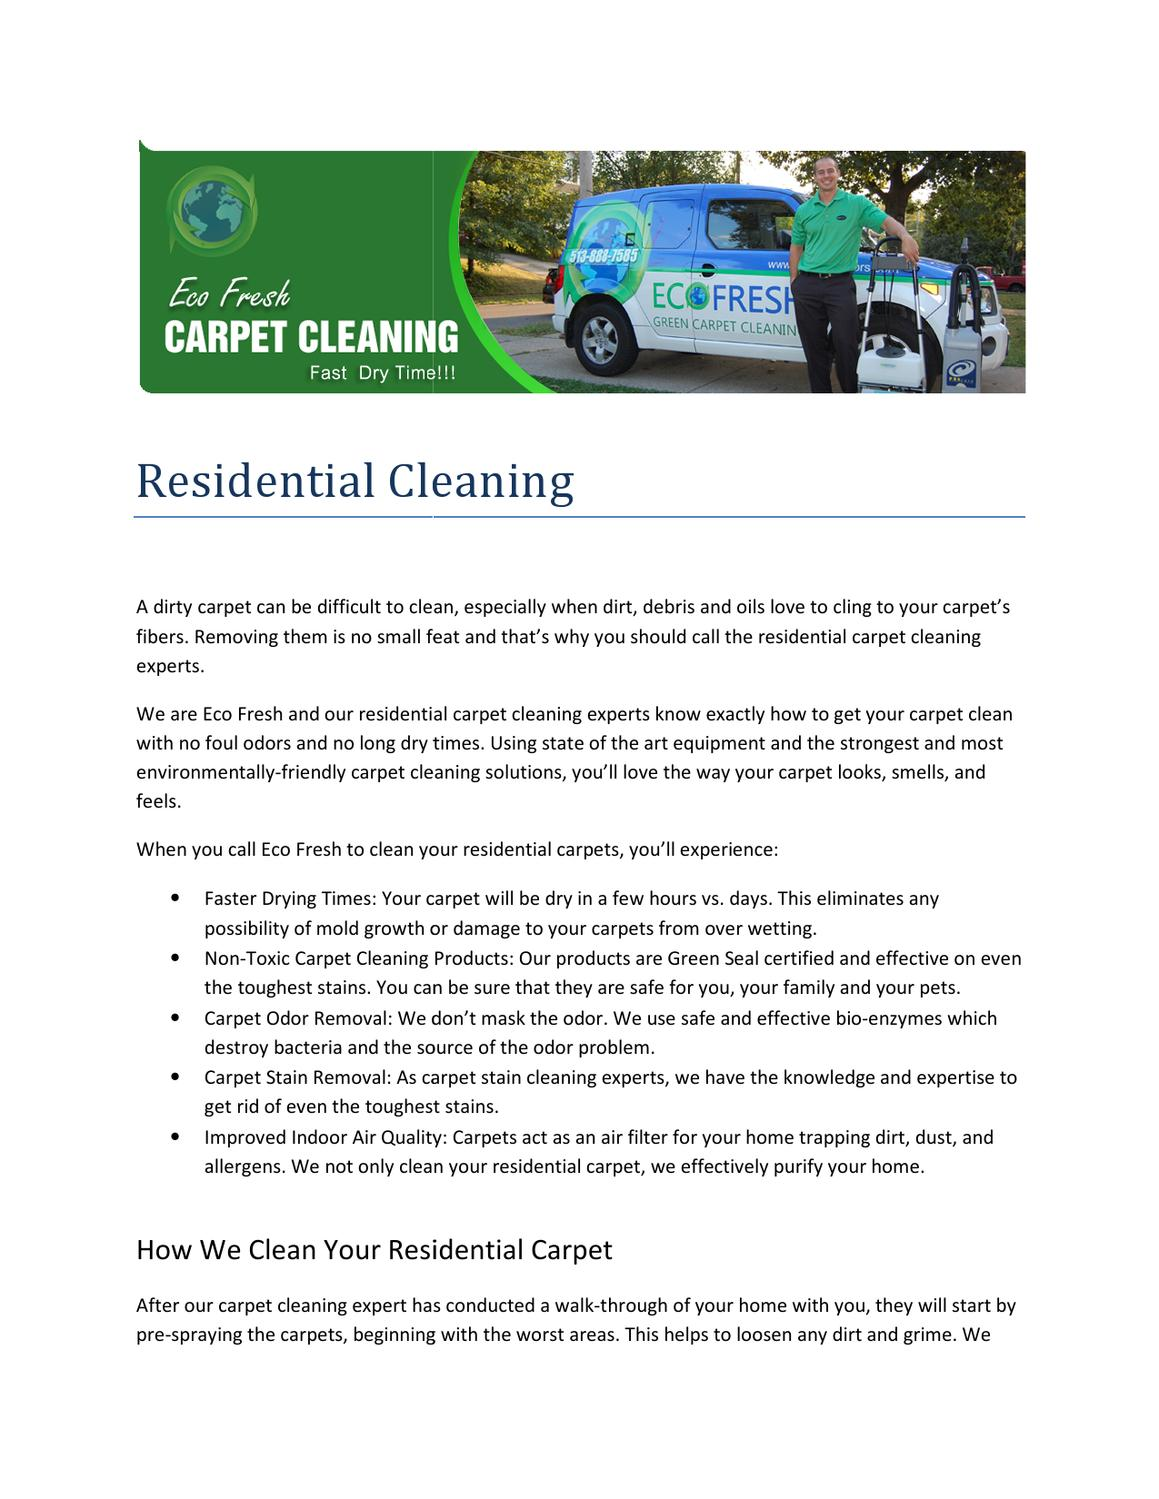 Eco-friendly carpet cleaning solutions that are no less than traditional cleaning! by Eco Fresh - issuu